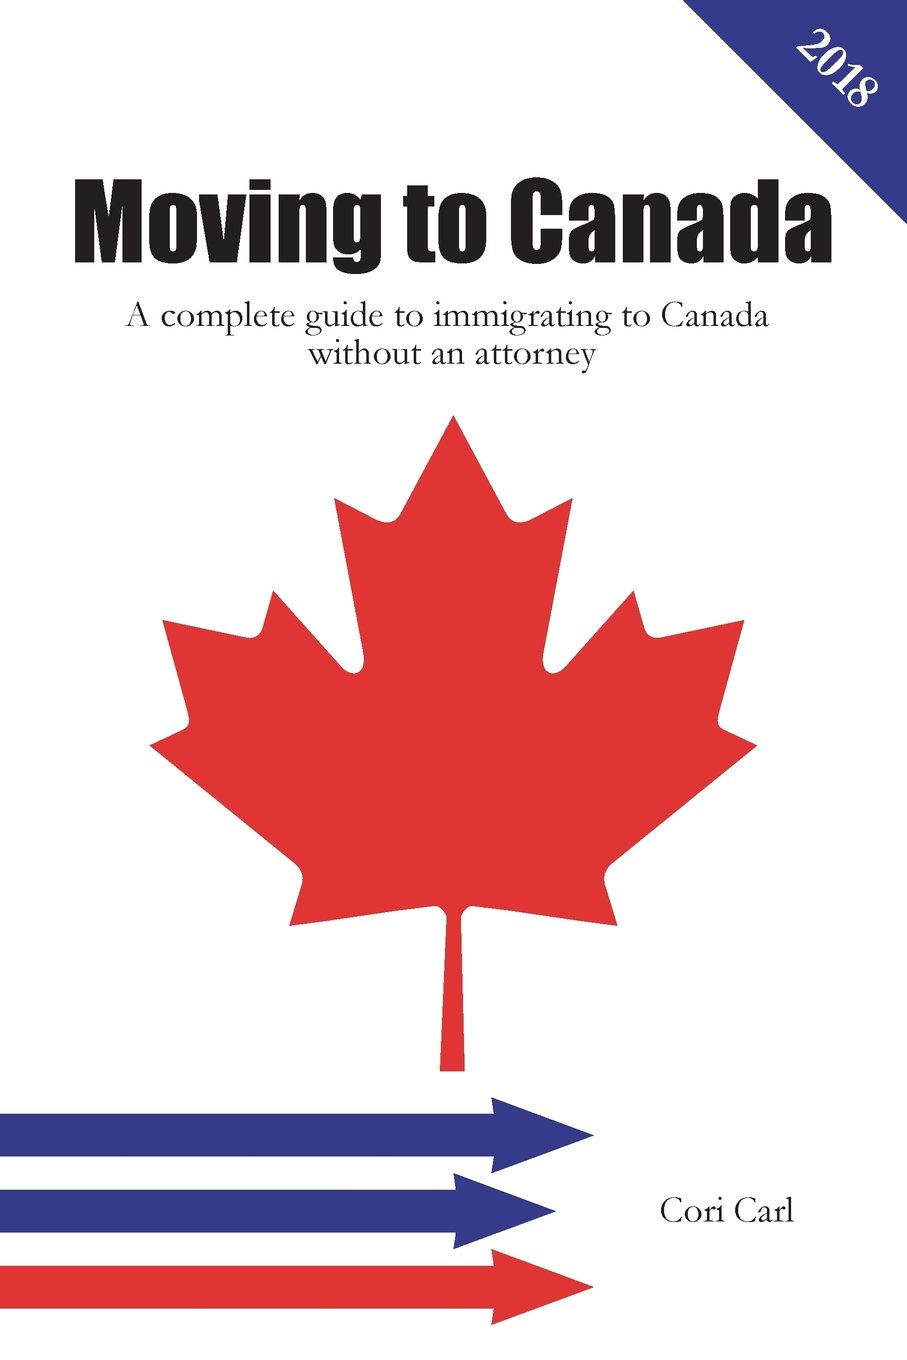 Image OfMoving To Canada: A Complete Guide To Immigrating To Canada Without An Attorney